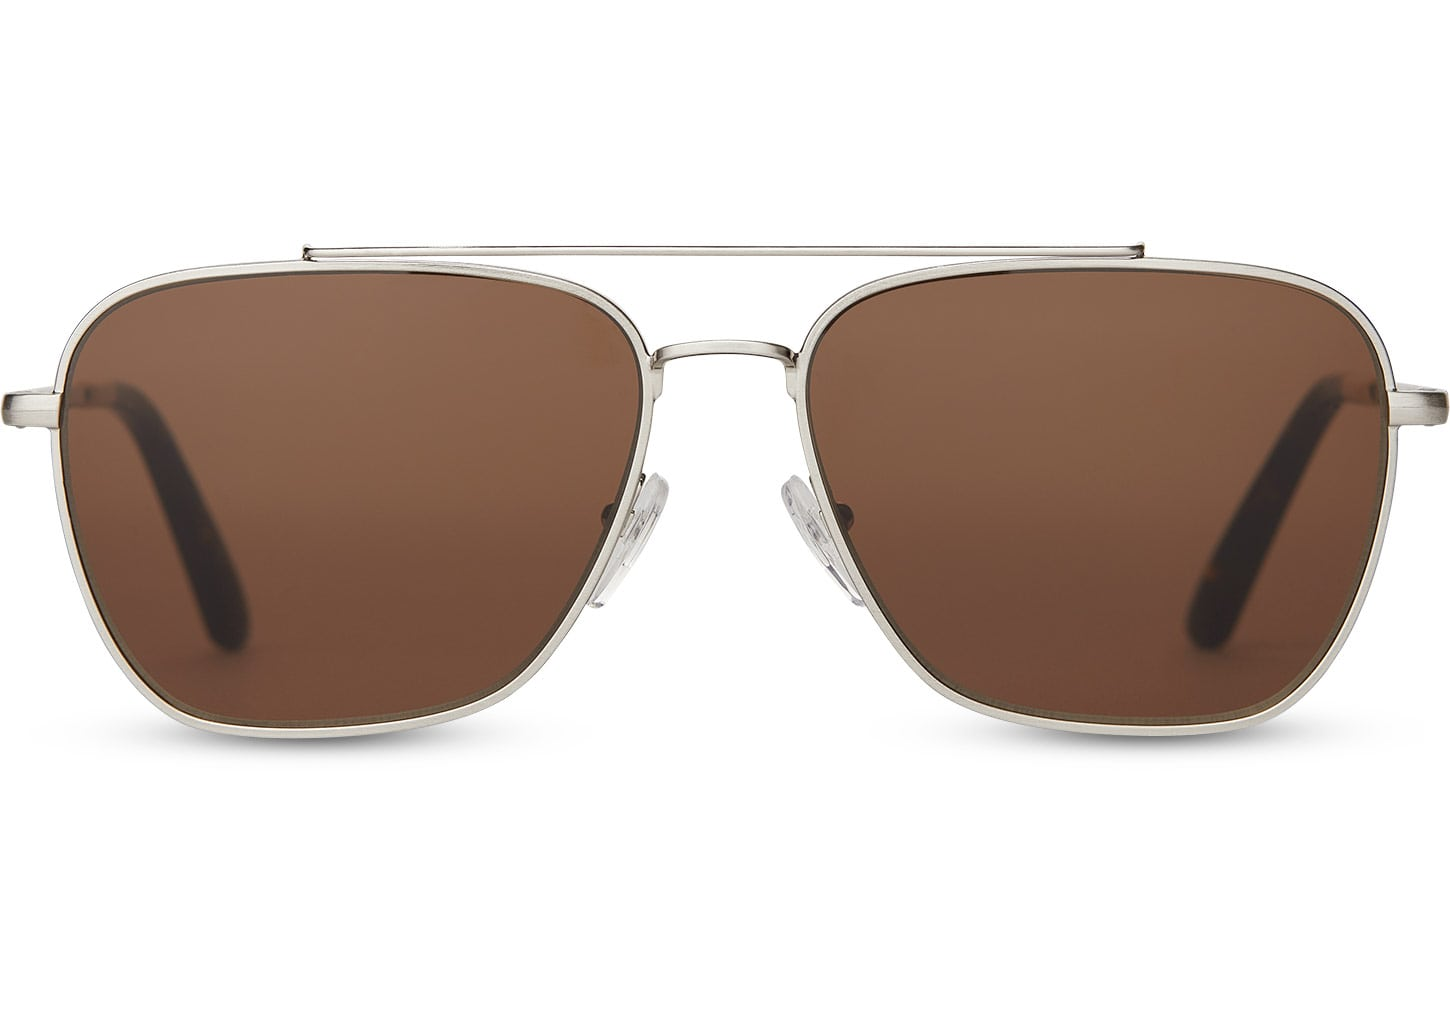 TOMS - Irwin 201 Silver Polarized Sunglasses / Solid Brown Lenses